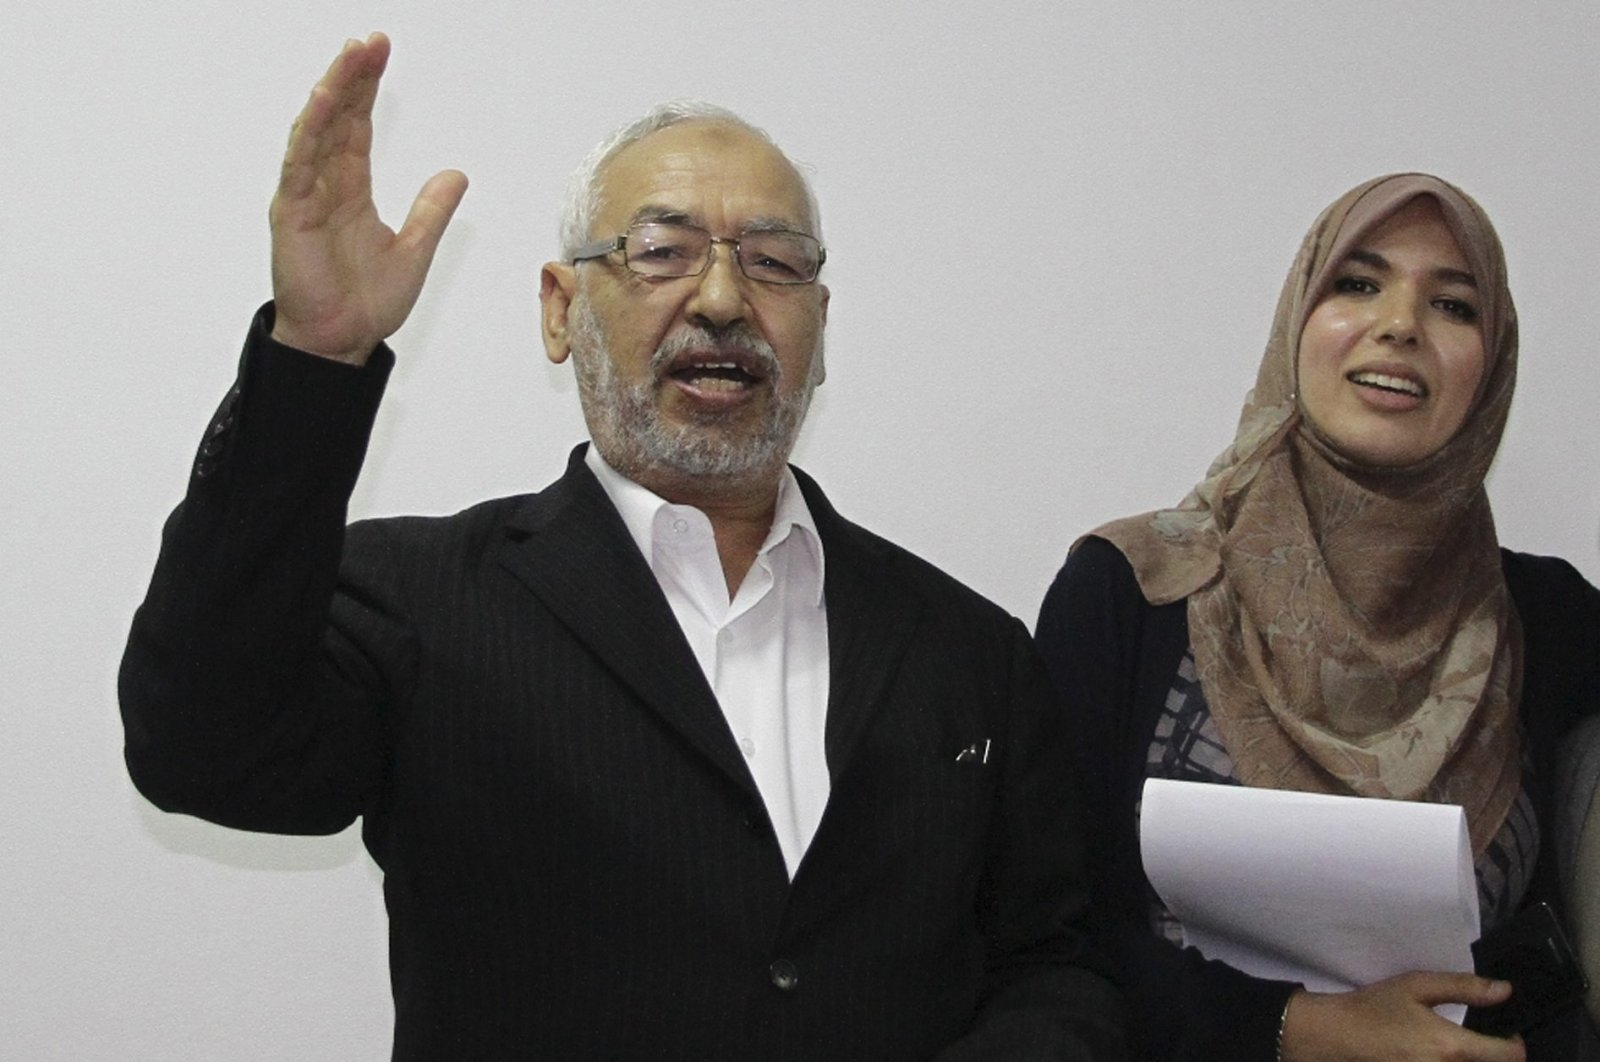 Rashid al-Ghannushi, Tunisian leader and founder of the moderate party Ennahda, celebrates an electoral victory with his daughter at the party's headquarters in Tunis, Tunisia, Oct. 27, 2011. (AP Photo)